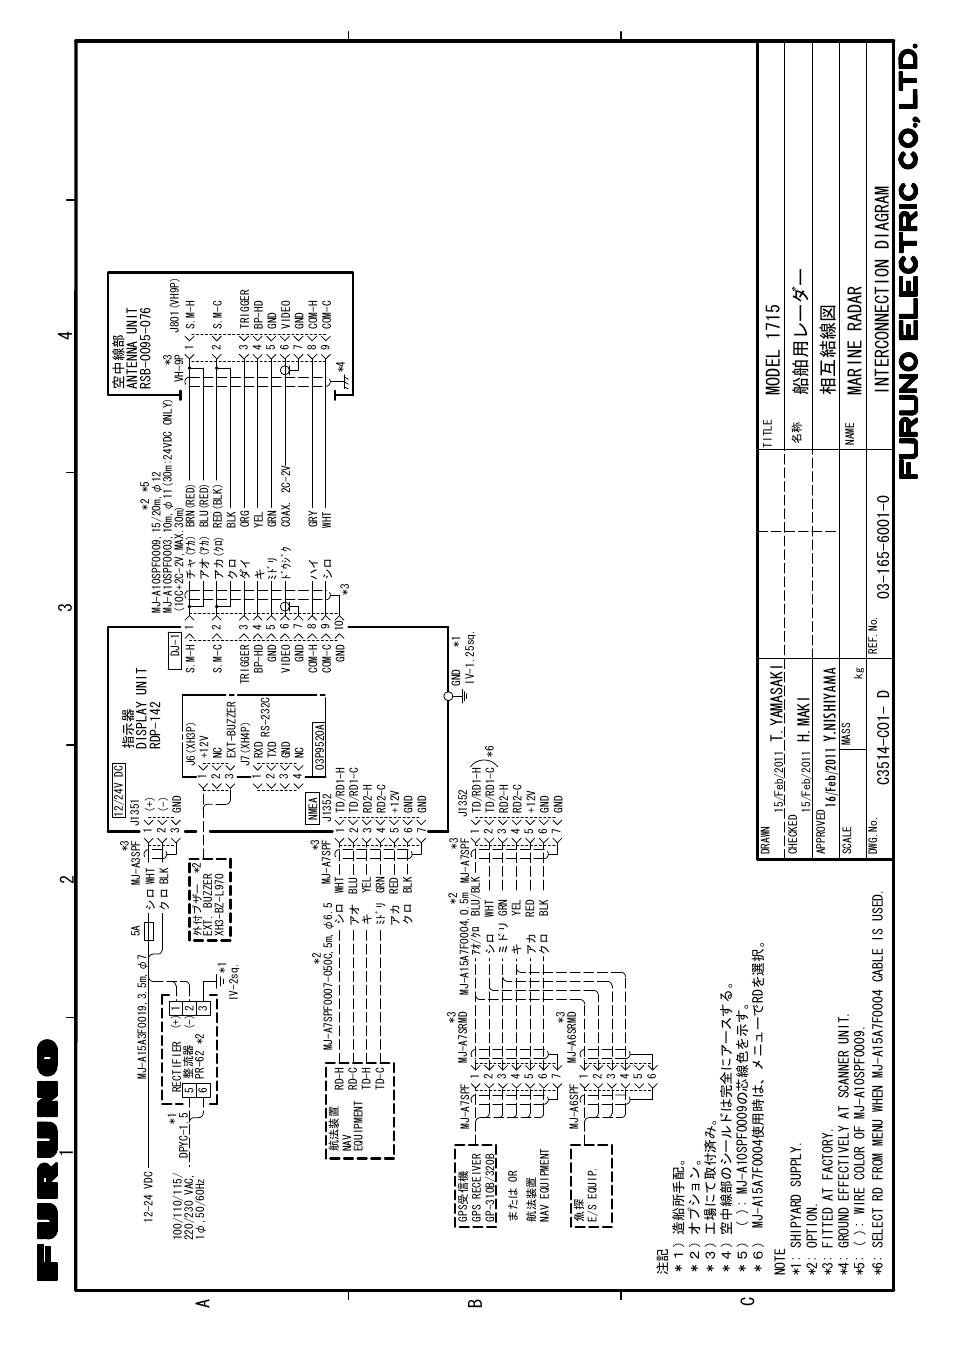 1715 Wiring Diagram Page 2 And Schematics Furuno He Hyde Spring Wire Co Source Interconnection Y Nishiyama S 1 Ab C 3 4